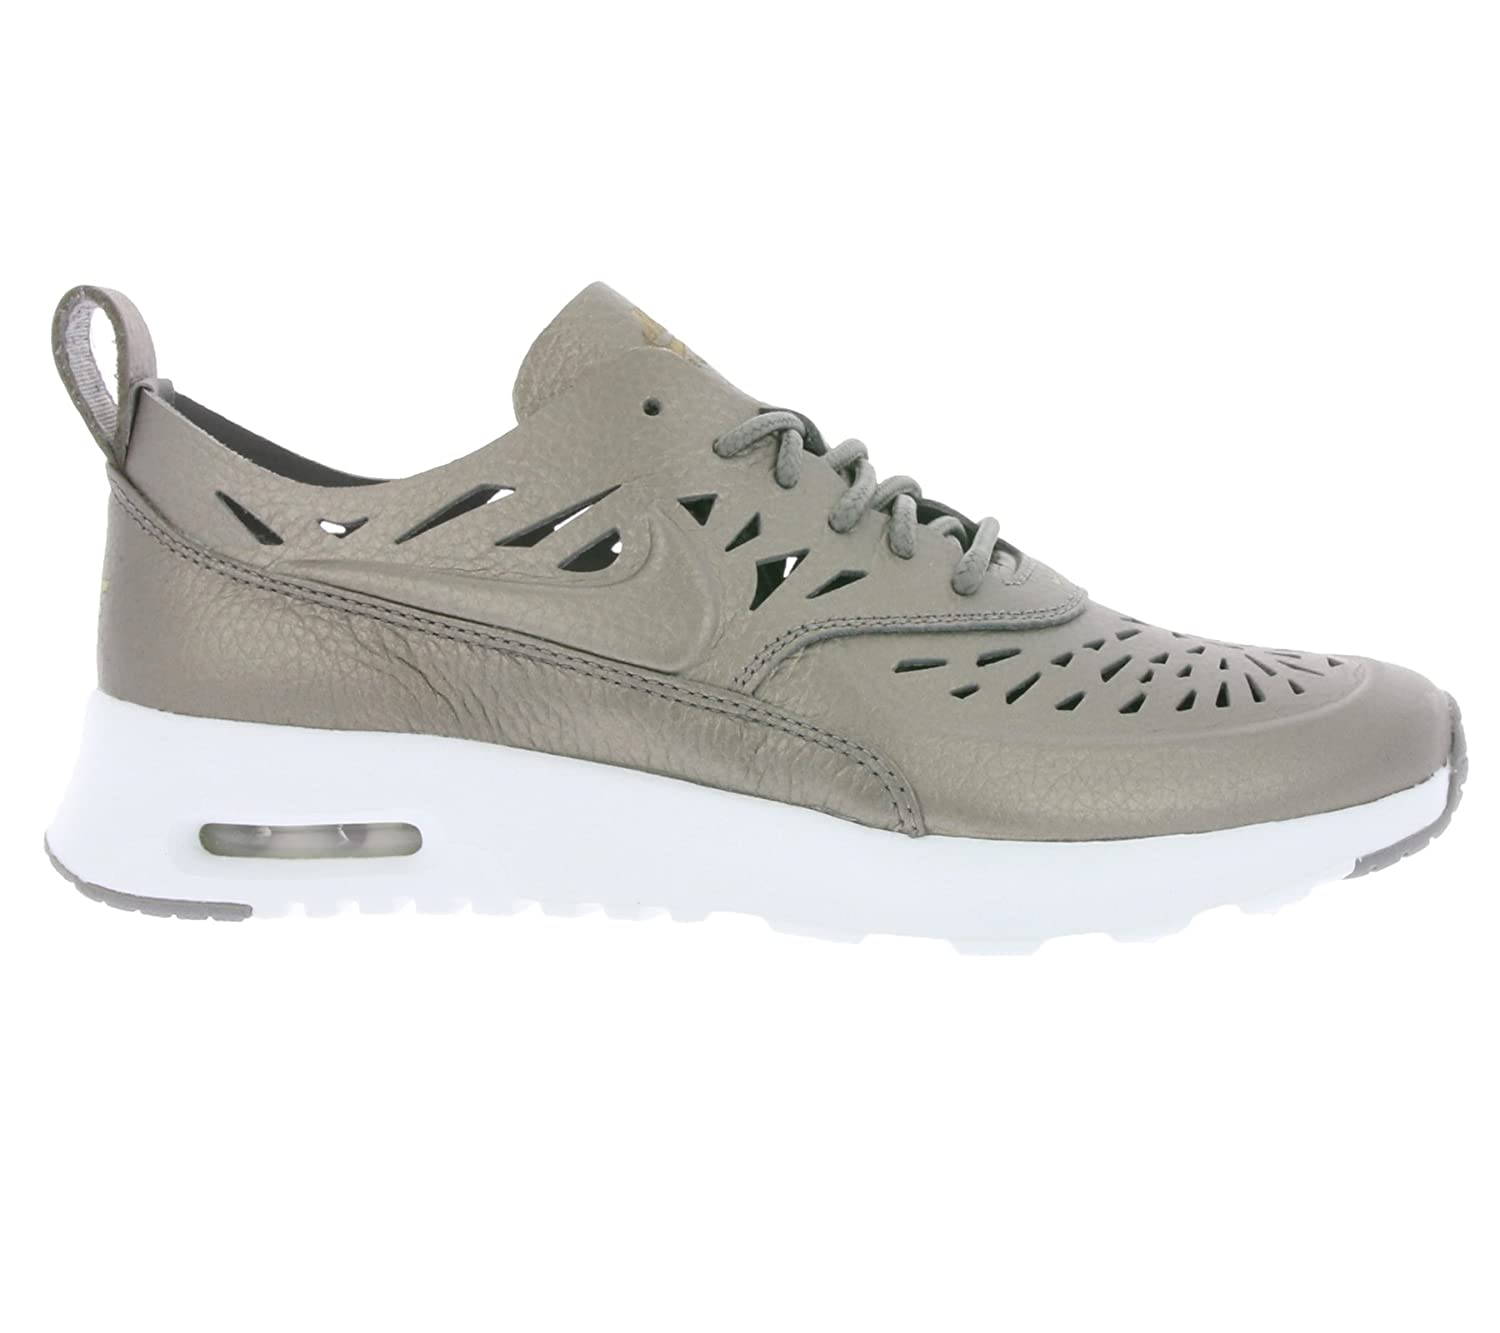 promo code 6451b fc431 Amazon.com   Nike Womens Air Max Thea Joli Low Top Lace Up Running Sneaker    Shoes